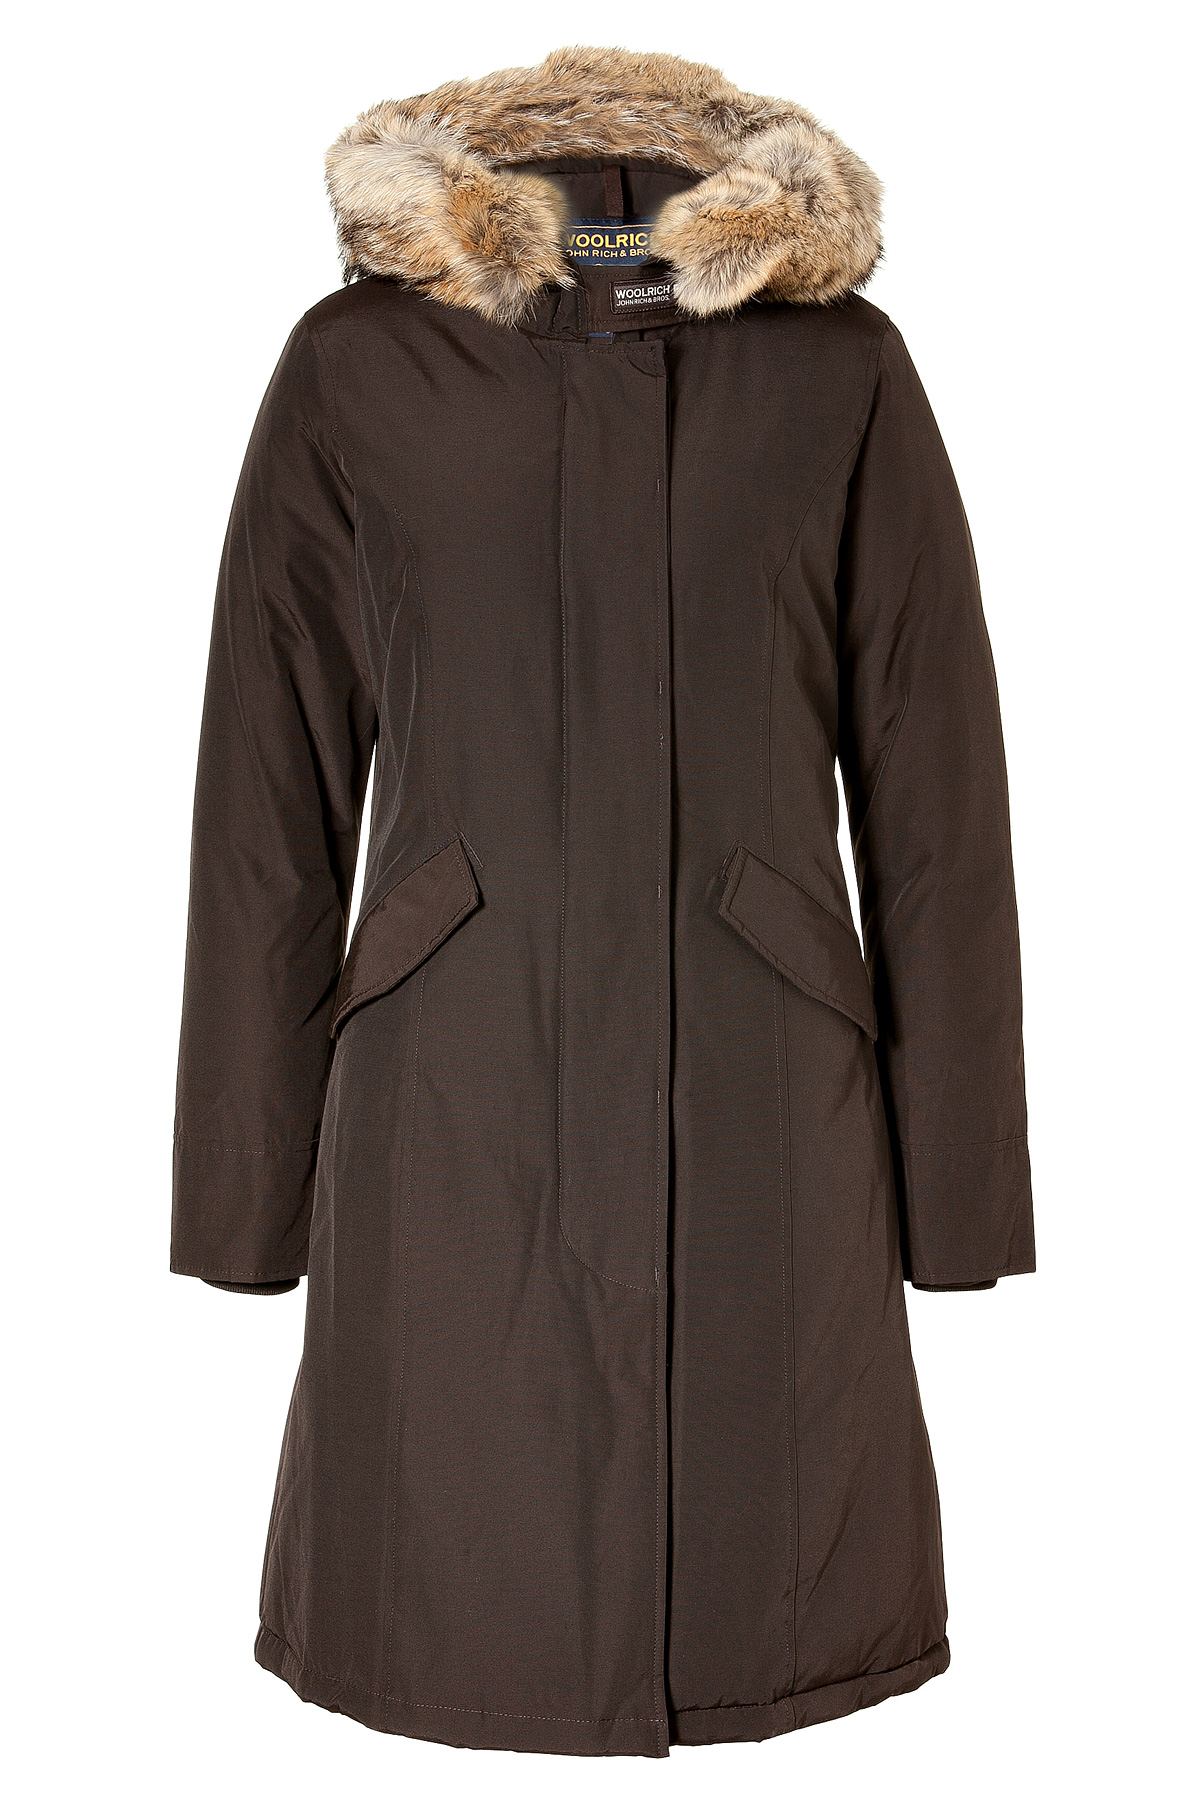 woolrich wood brown long arctic down parka in black brown lyst. Black Bedroom Furniture Sets. Home Design Ideas